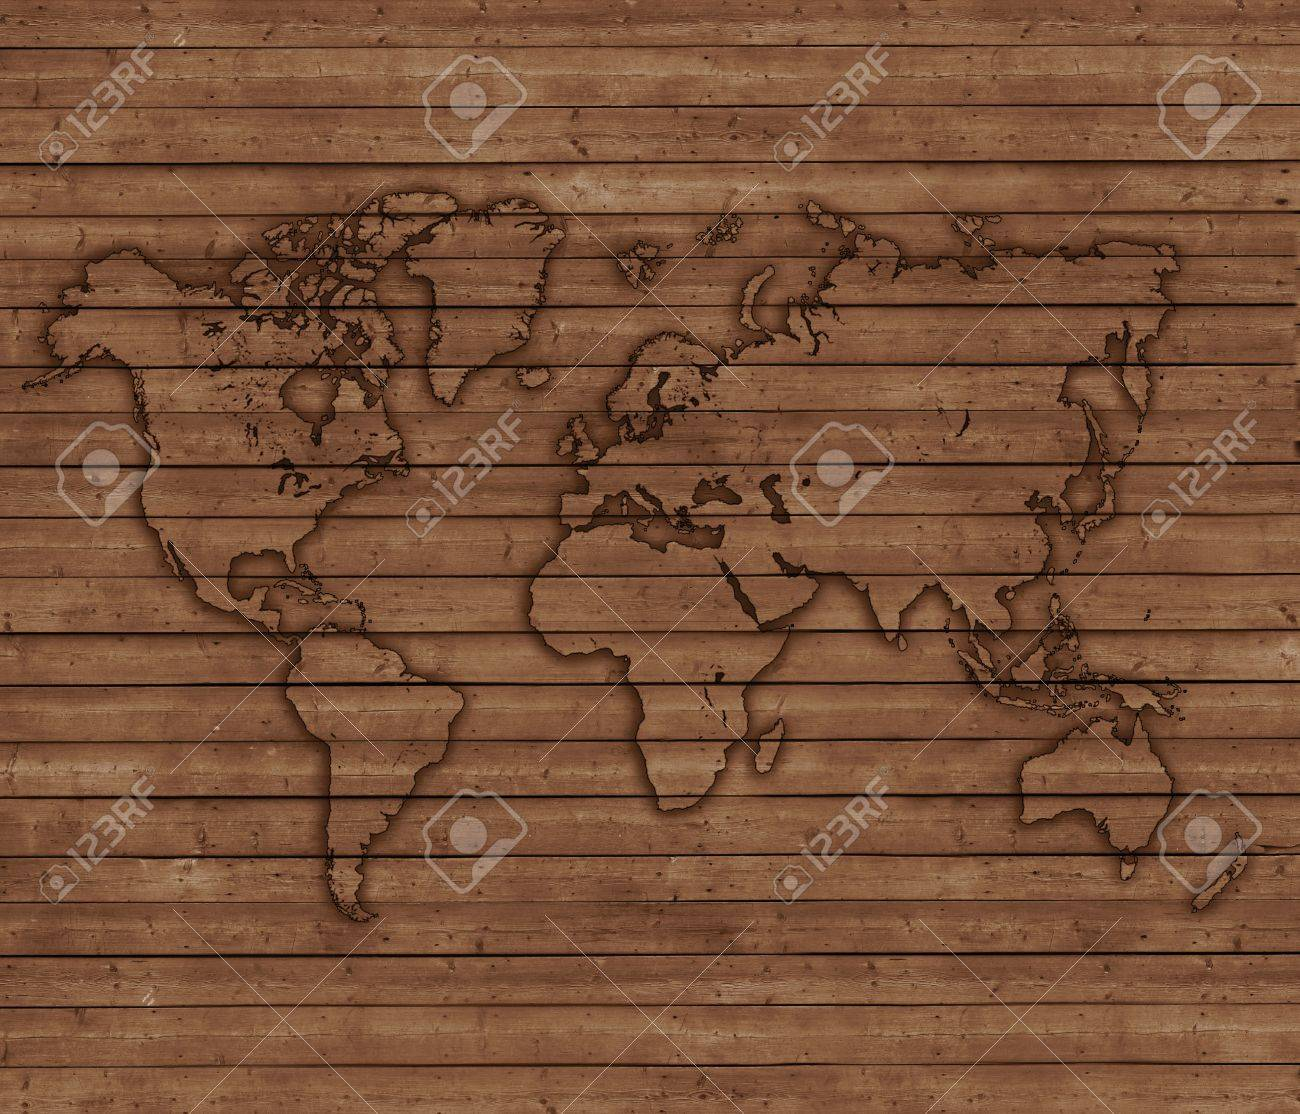 world map depicted on wooden boards wooden background